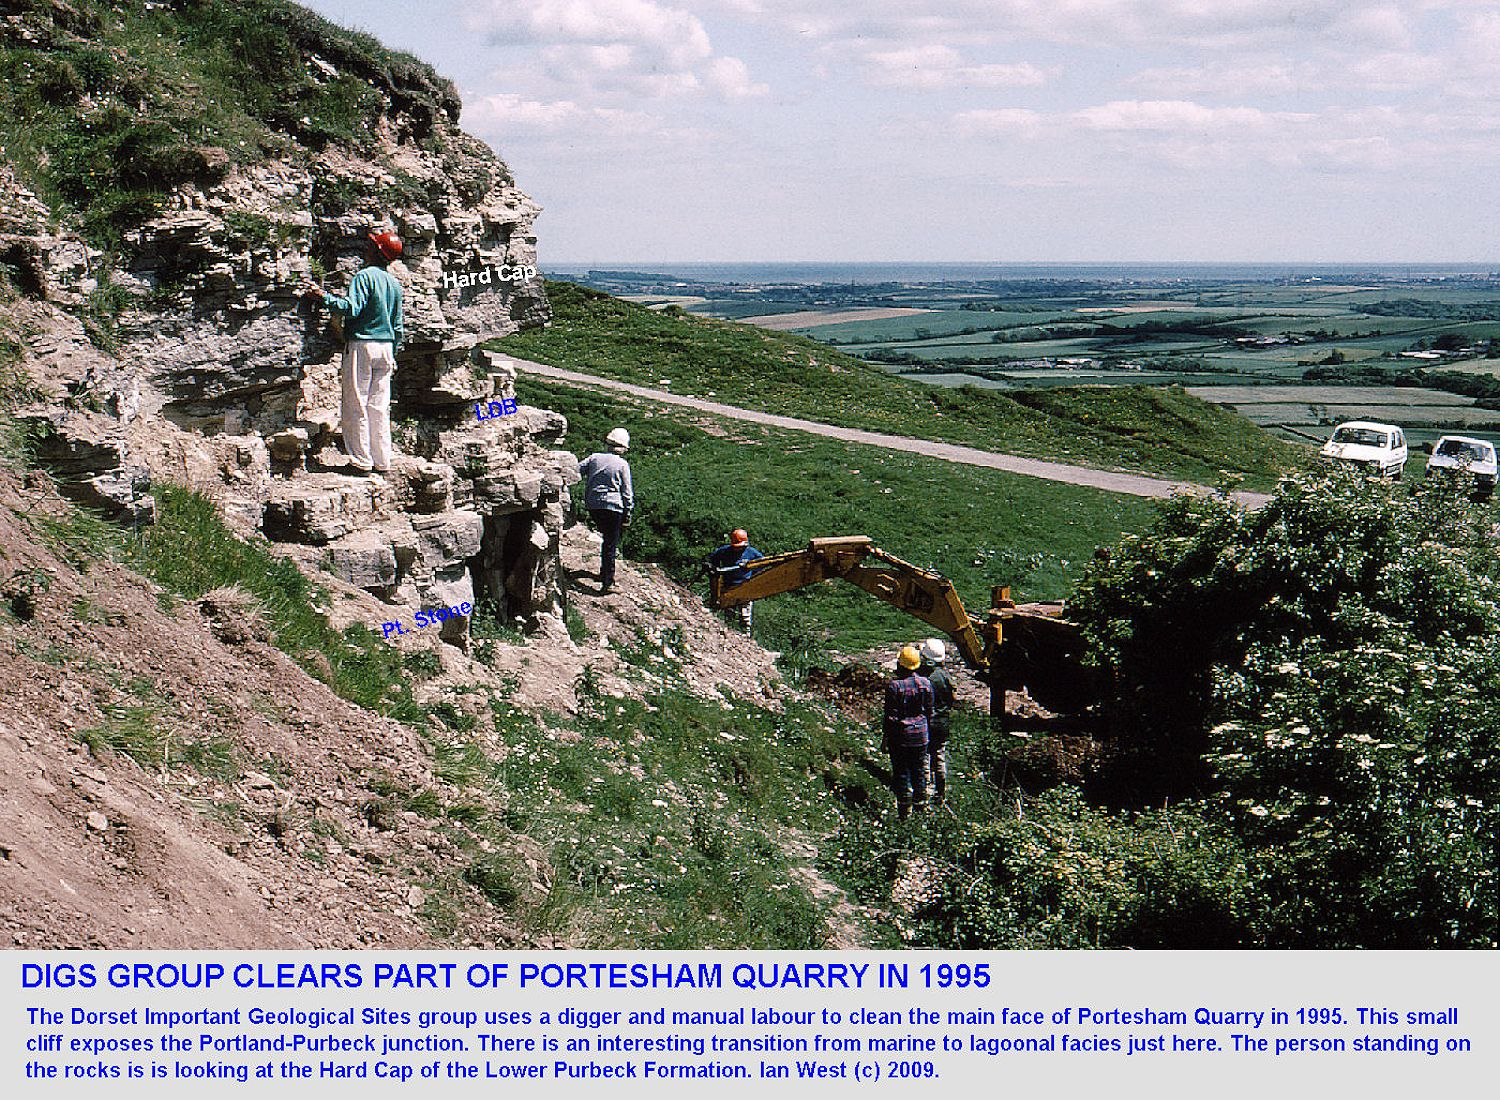 The DIGS Group clears the Portland-Purbeck face of Portesham Rocket Quarry, Dorset, in 1995